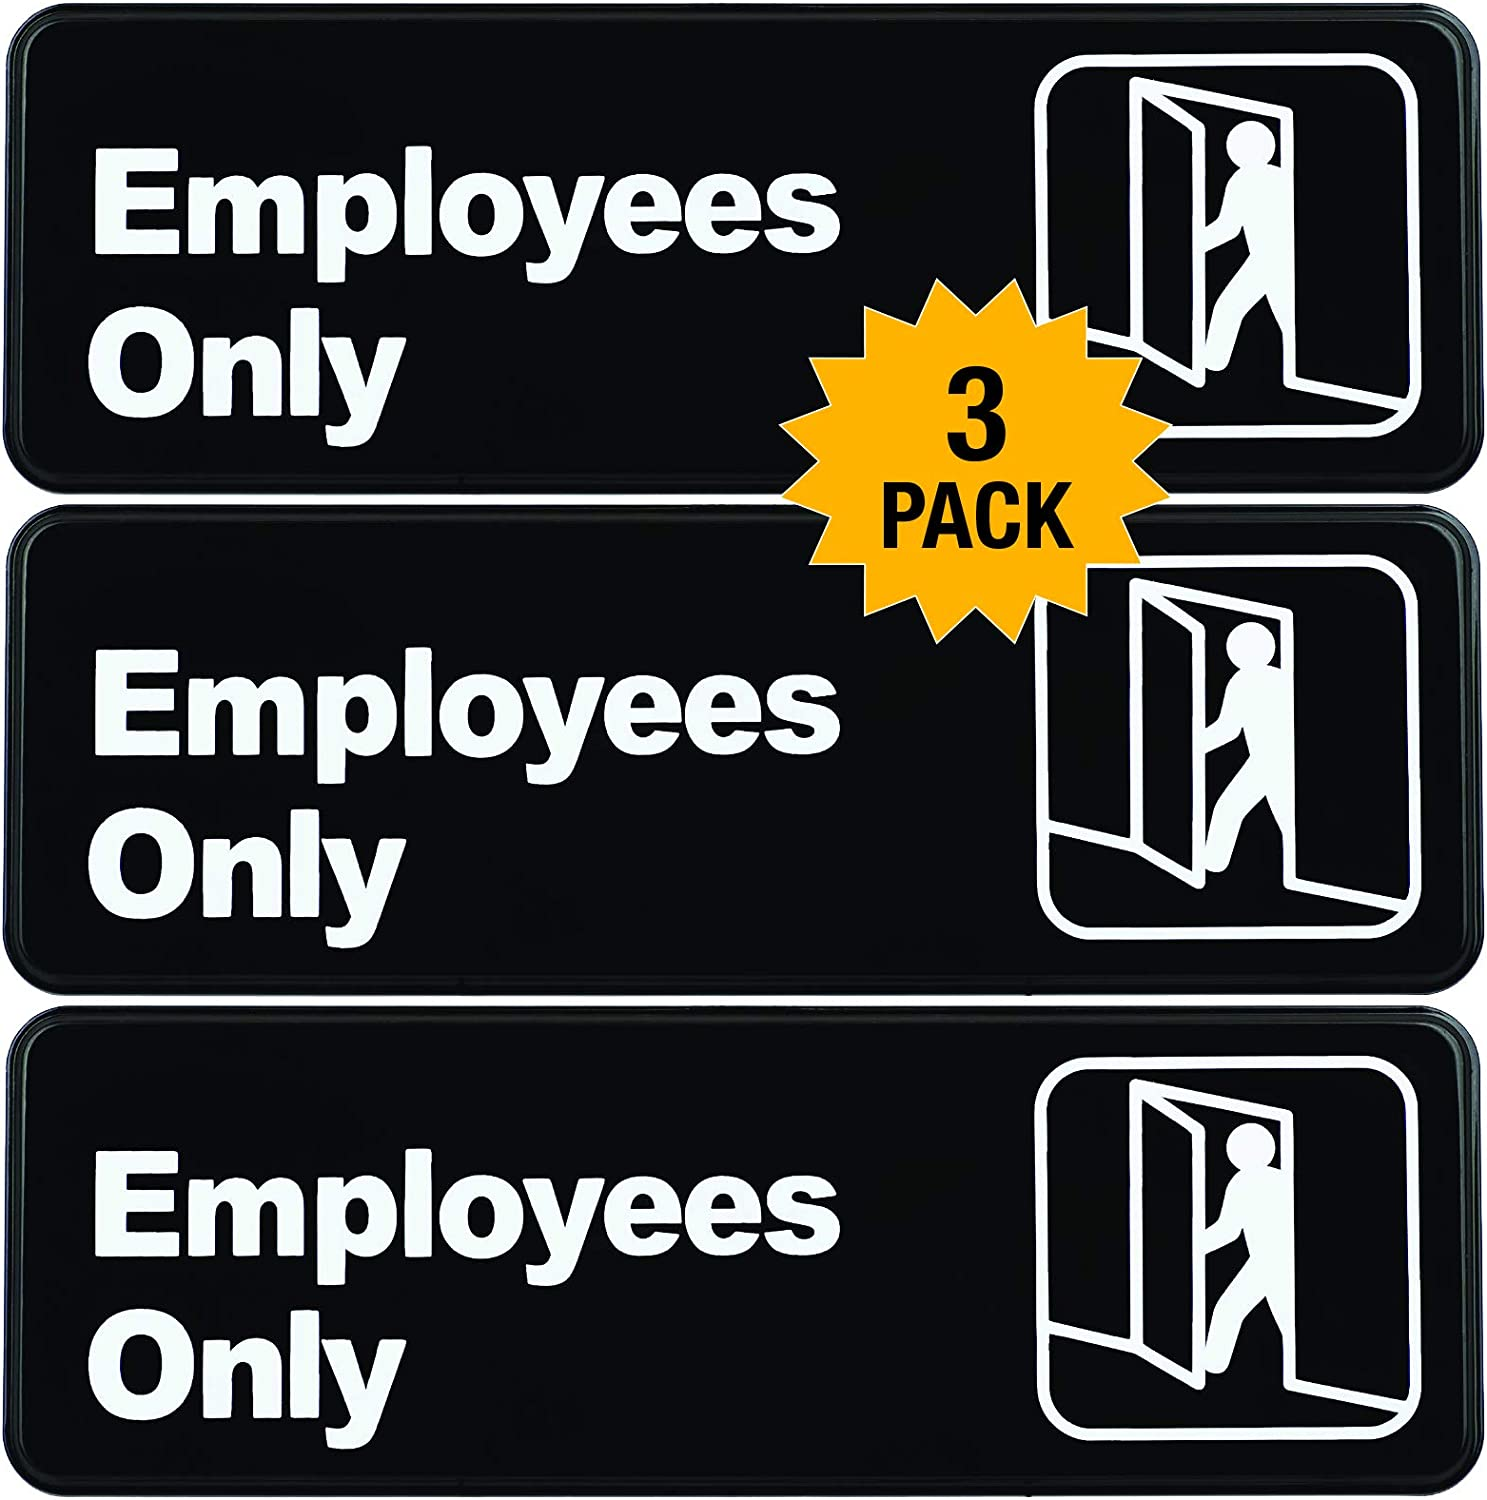 """Employees Only Sign: Easy to Mount Informative Plastic Sign with Symbols 9""""x3"""", Pack of 3 (Black)"""